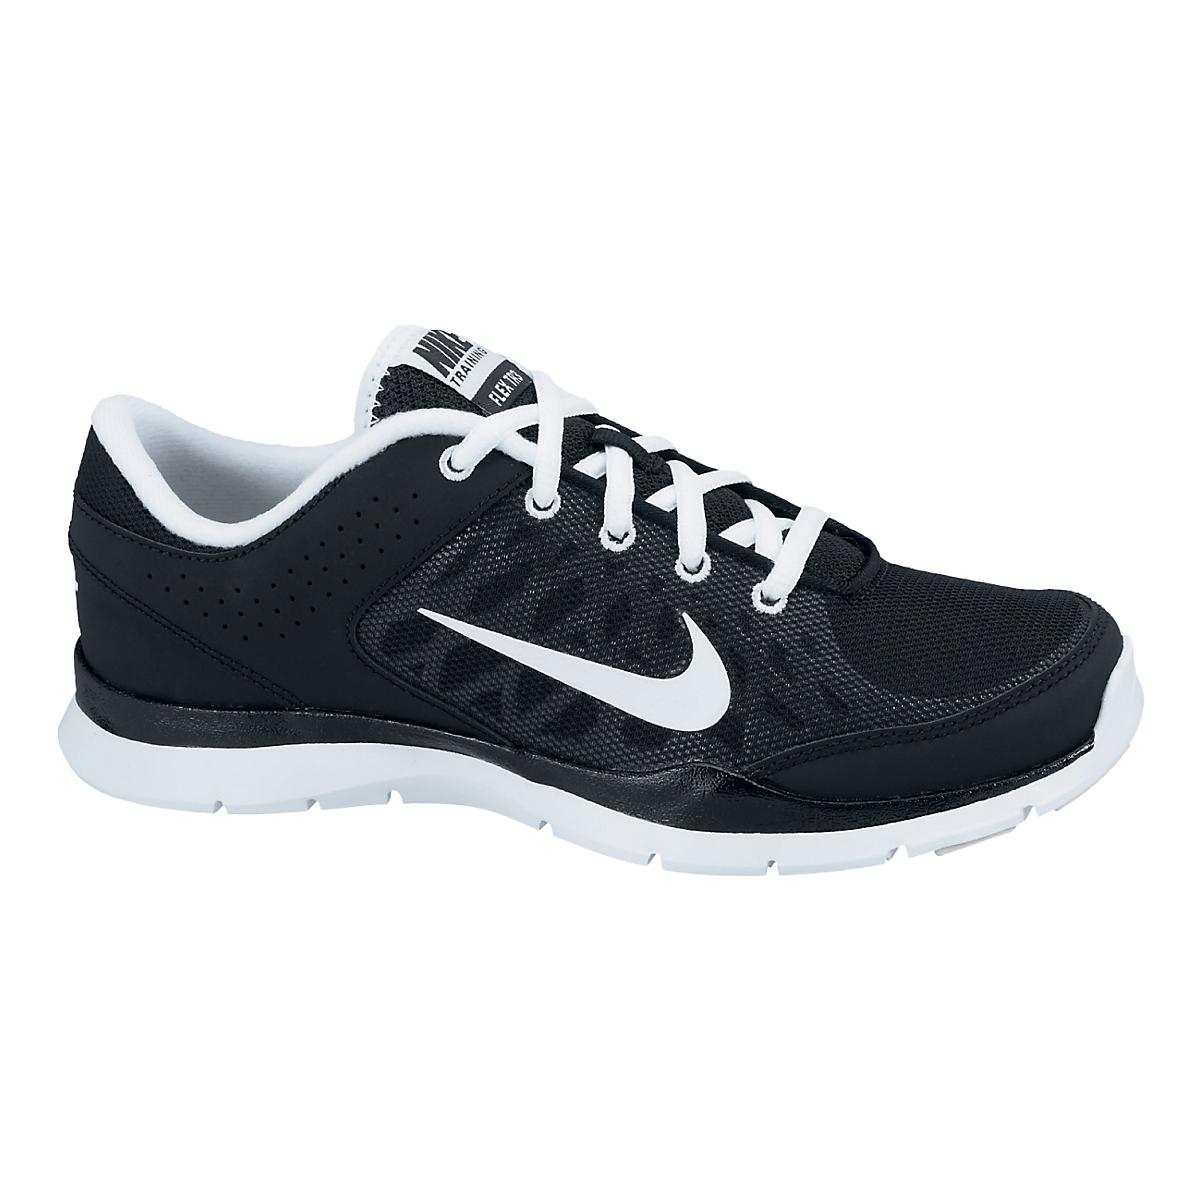 Womens Nike Flex Trainer 3 Cross Training Shoe at Road Runner Sports 283bff3a87d6